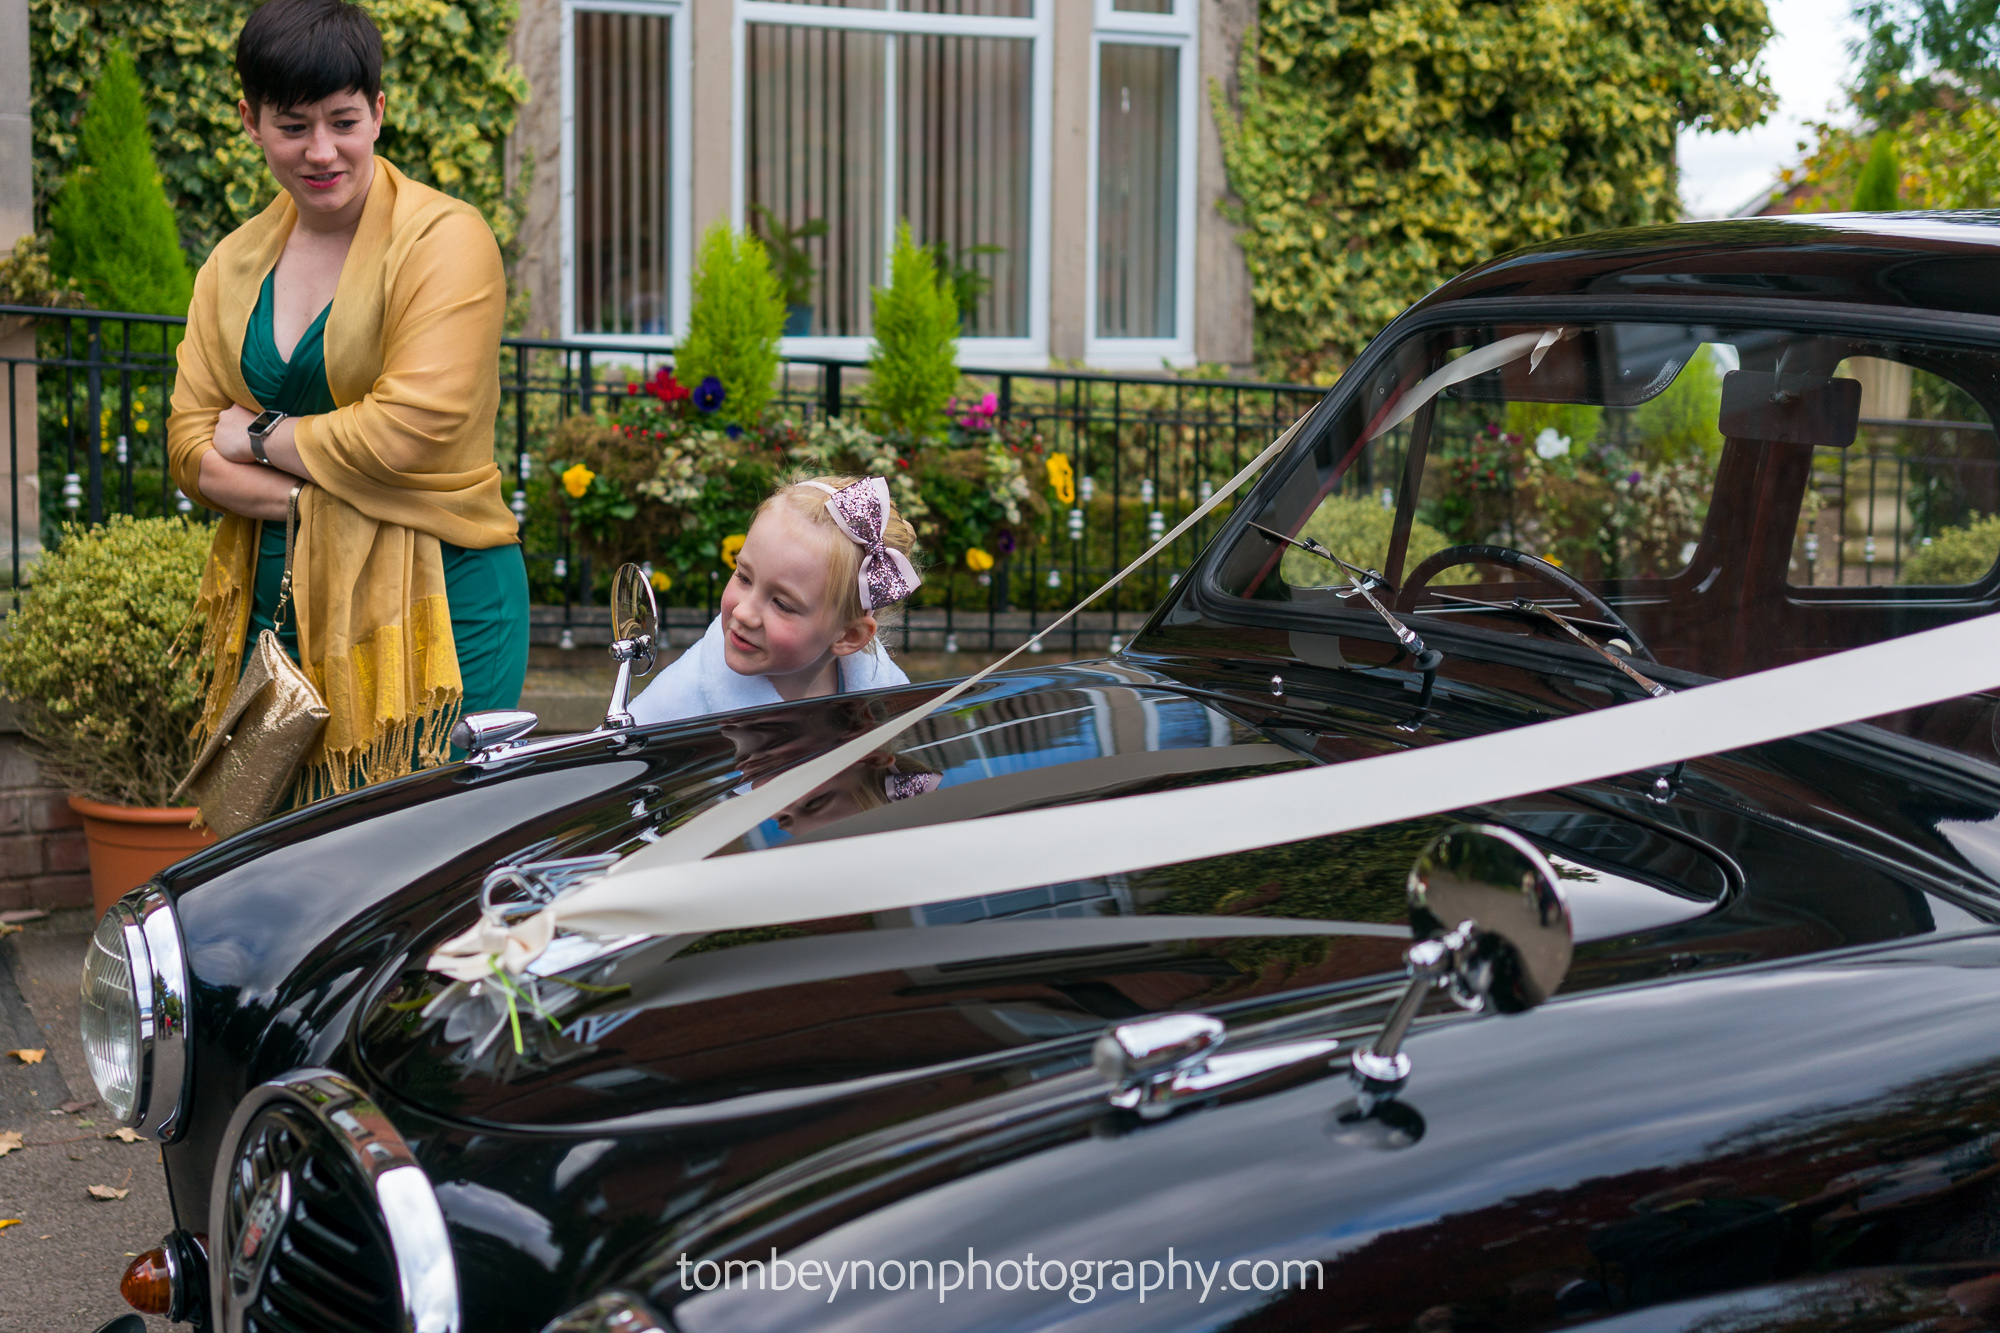 Small girl looks at her reflection in the mirror of the wedding car